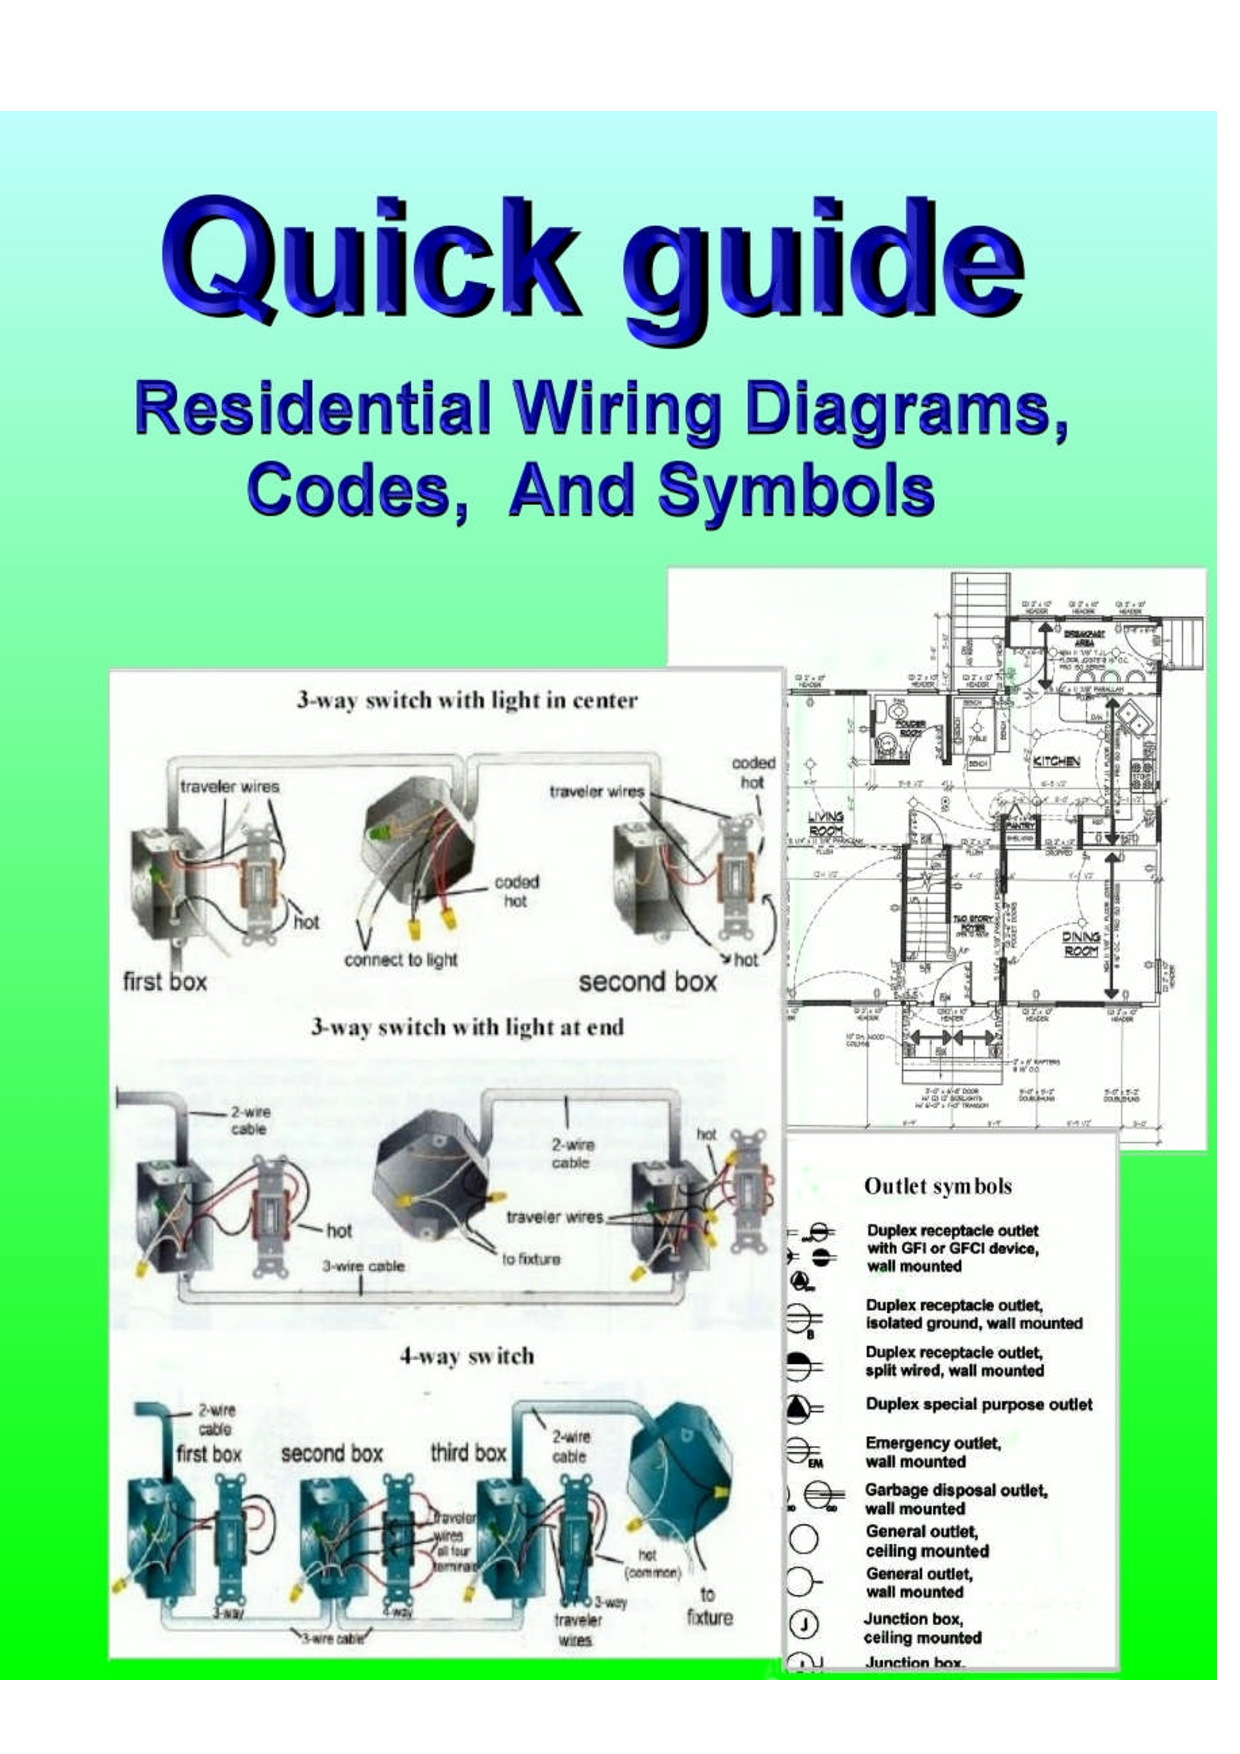 home electrical wiring diagrams home decor pinterest rh pinterest com home electrical wiring guide pdf home electrical wiring guide pdf